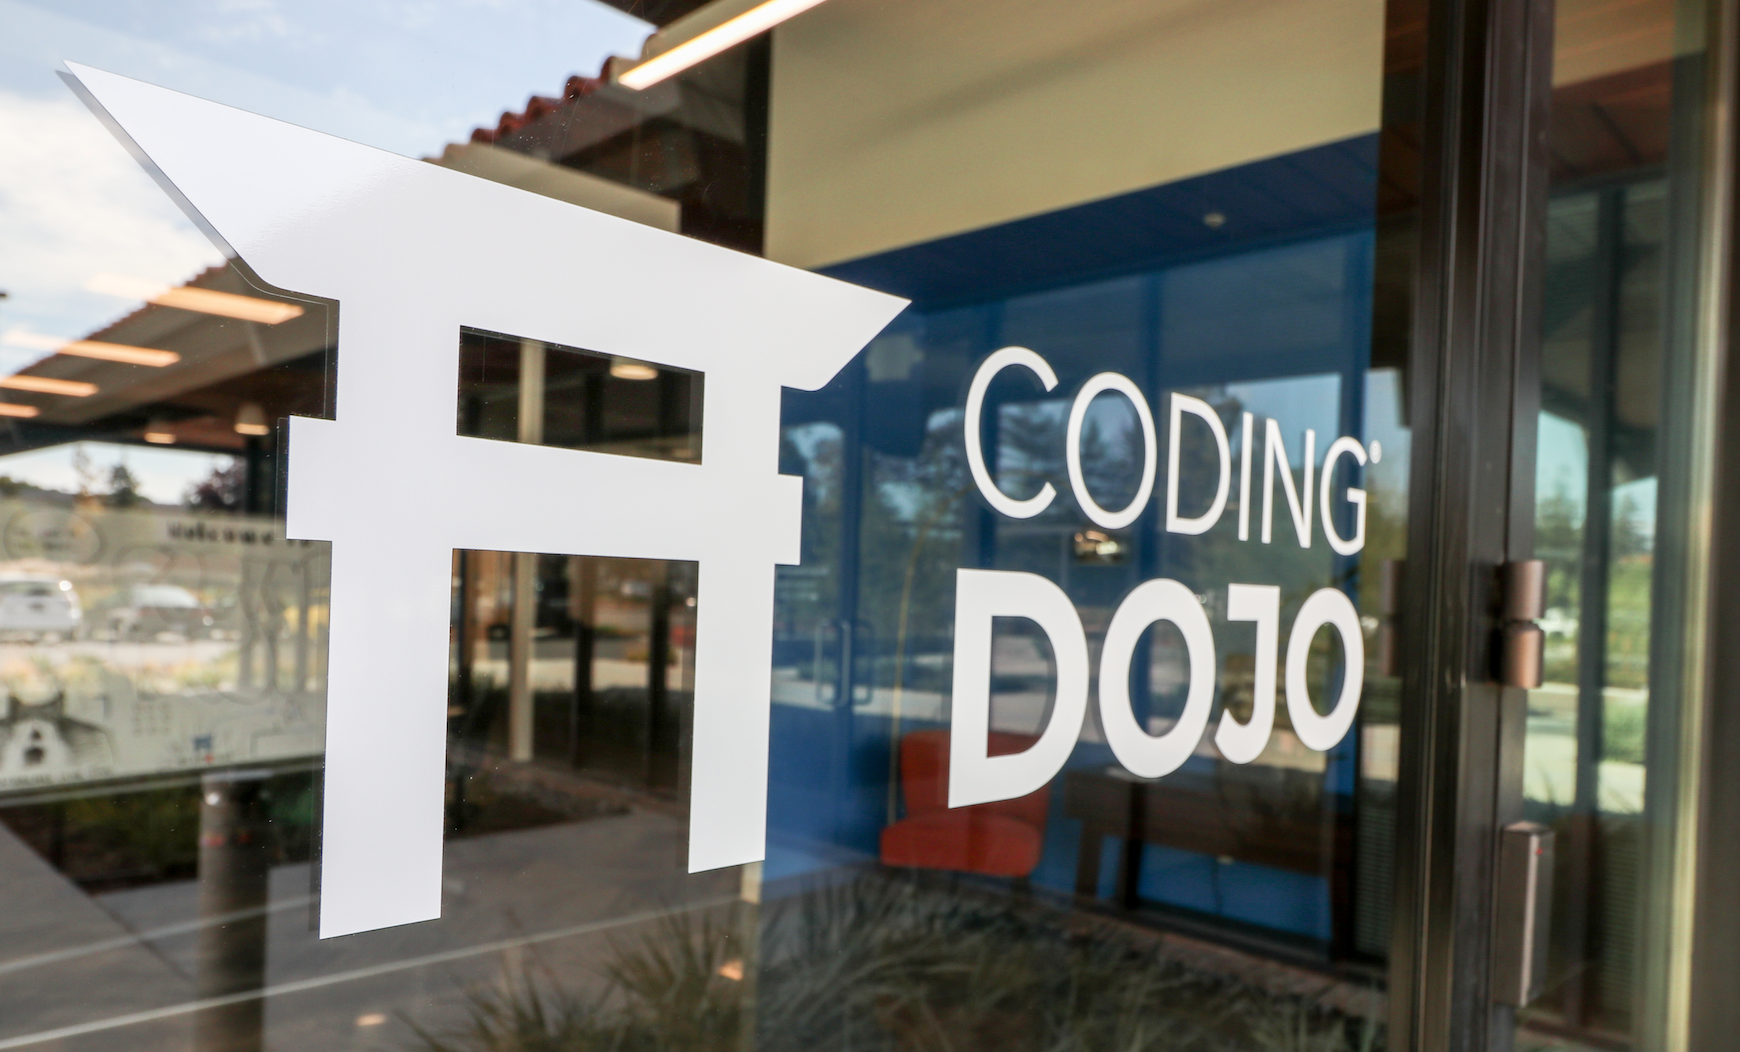 Coding Dojo offers the best Coding Bootcamp